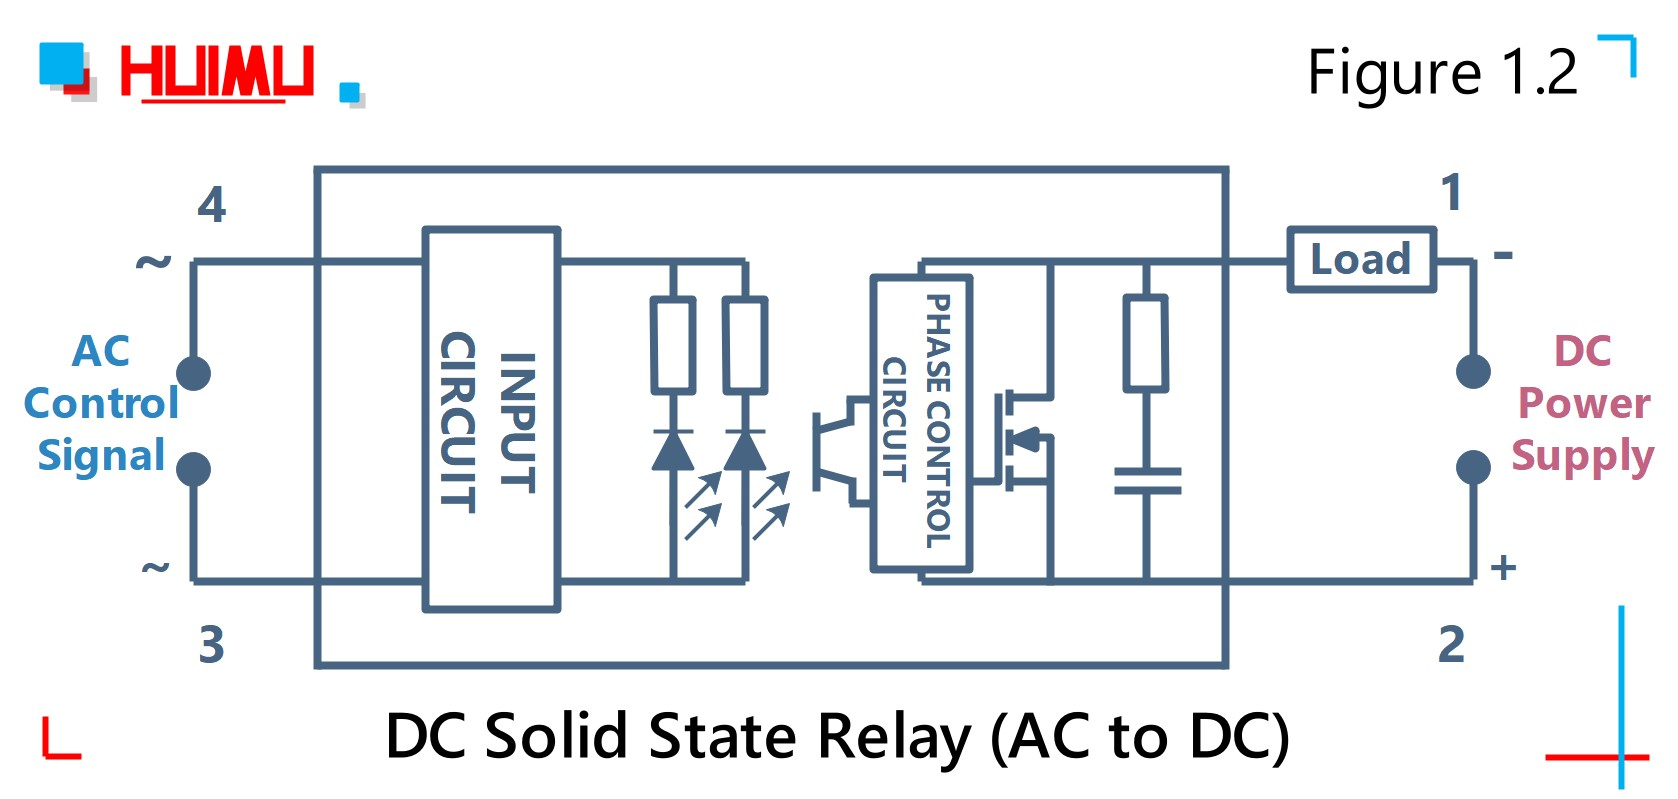 DC solid state relay (AC to DC) wiring diagram and circuit diagram